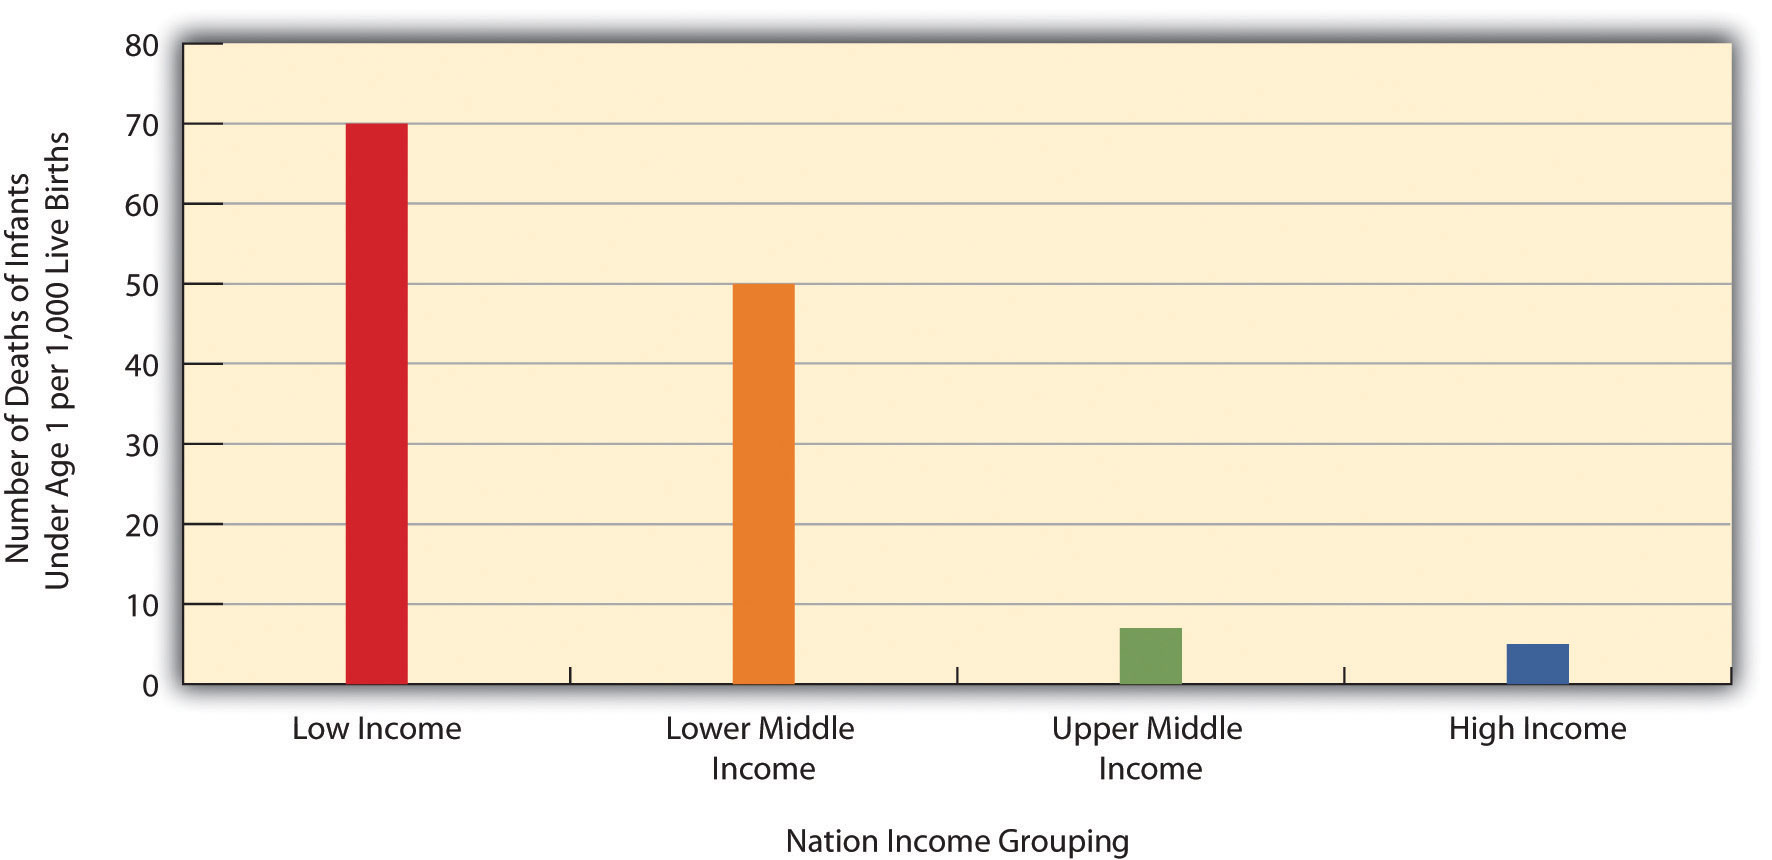 Infant Mortality for Low-Income, Lower-Middle-income, Higher-Middle-Income, and High-Income Nations